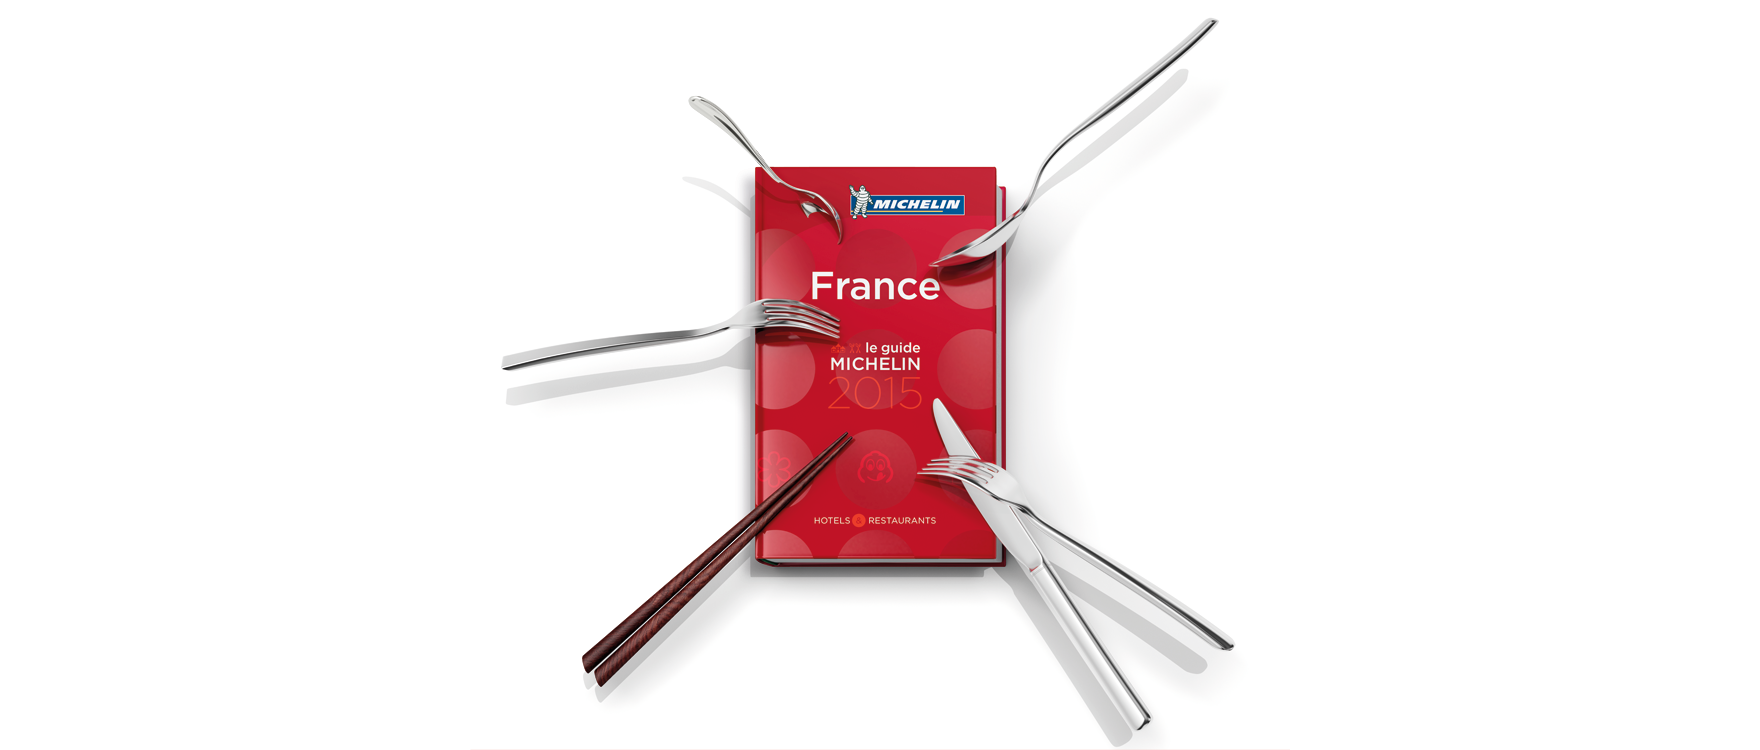 Guide Michelin, Guide Michelin France, Guide Michelin 2015, France, Guide Rouge, Guide Gastronomique